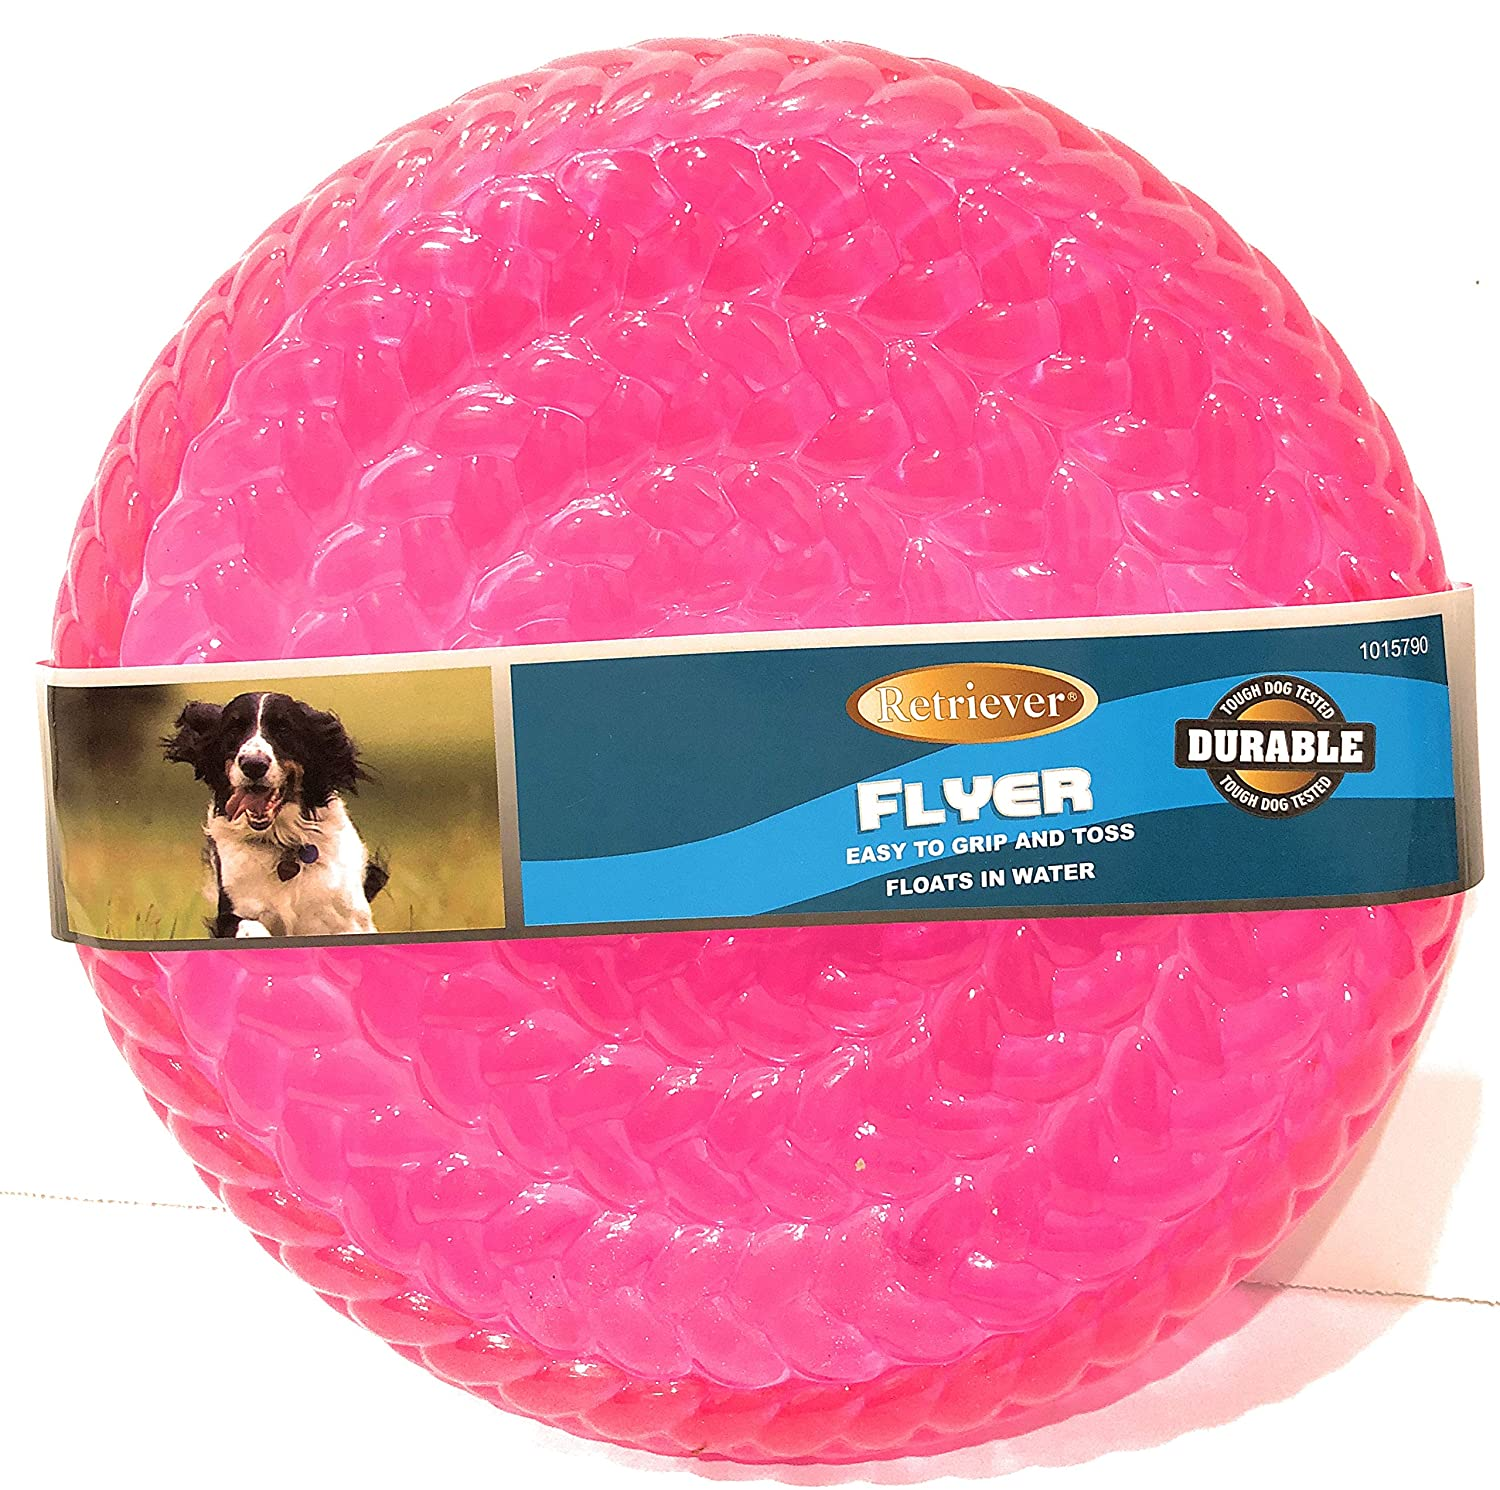 Tractor Supply Company, Retriever Rubber Frisbee Flyer Dog Toy, Assorted colors, 9 oz.